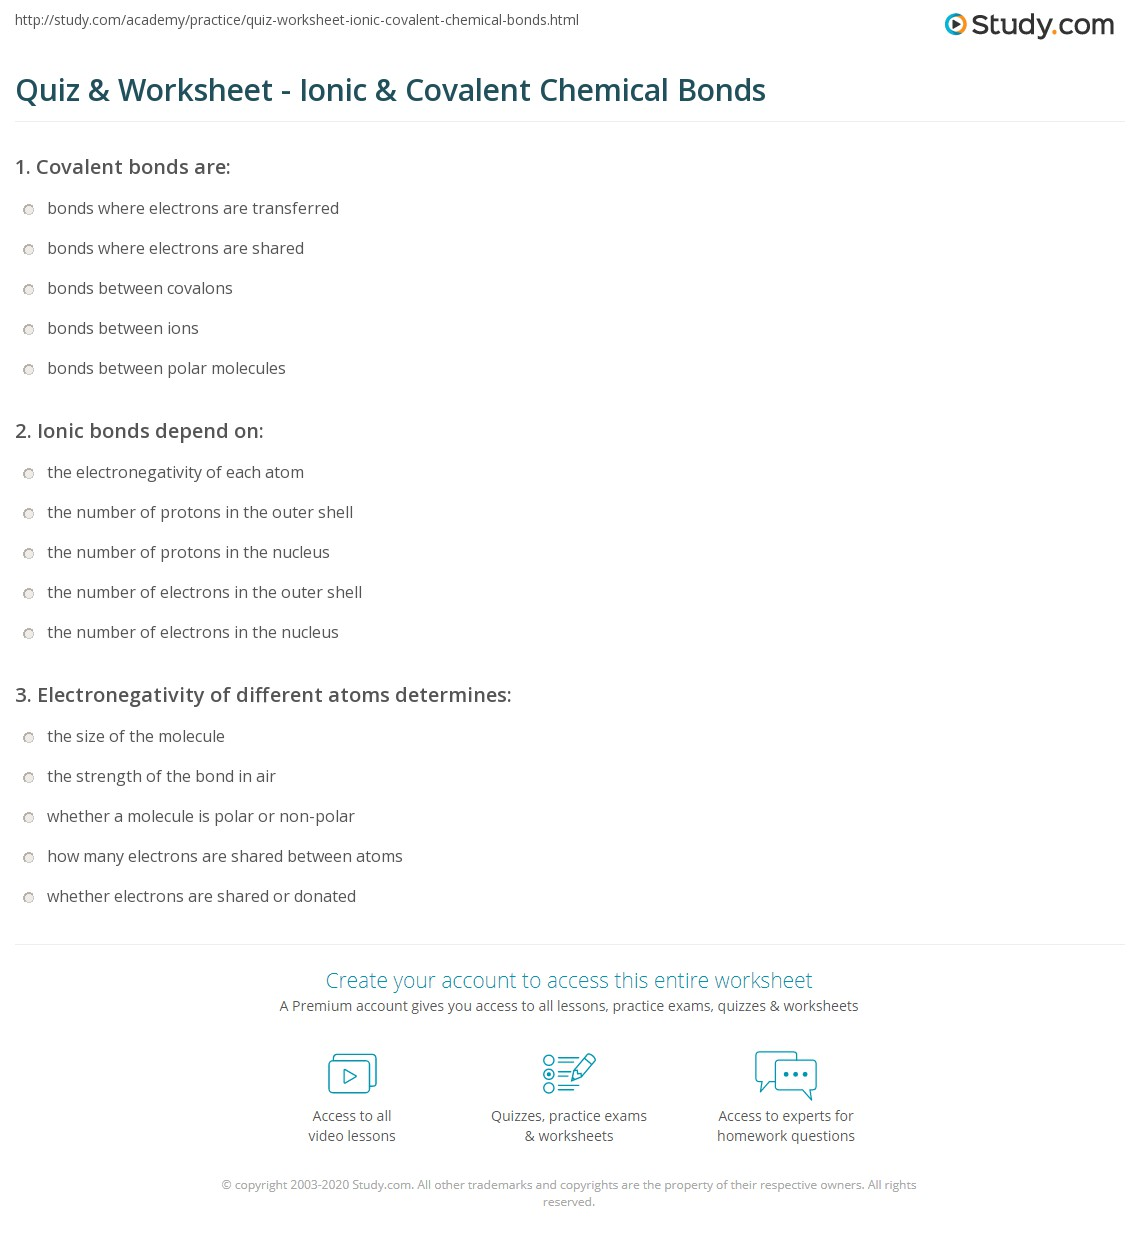 Quiz & Worksheet - Ionic & Covalent Chemical Bonds | Study.com